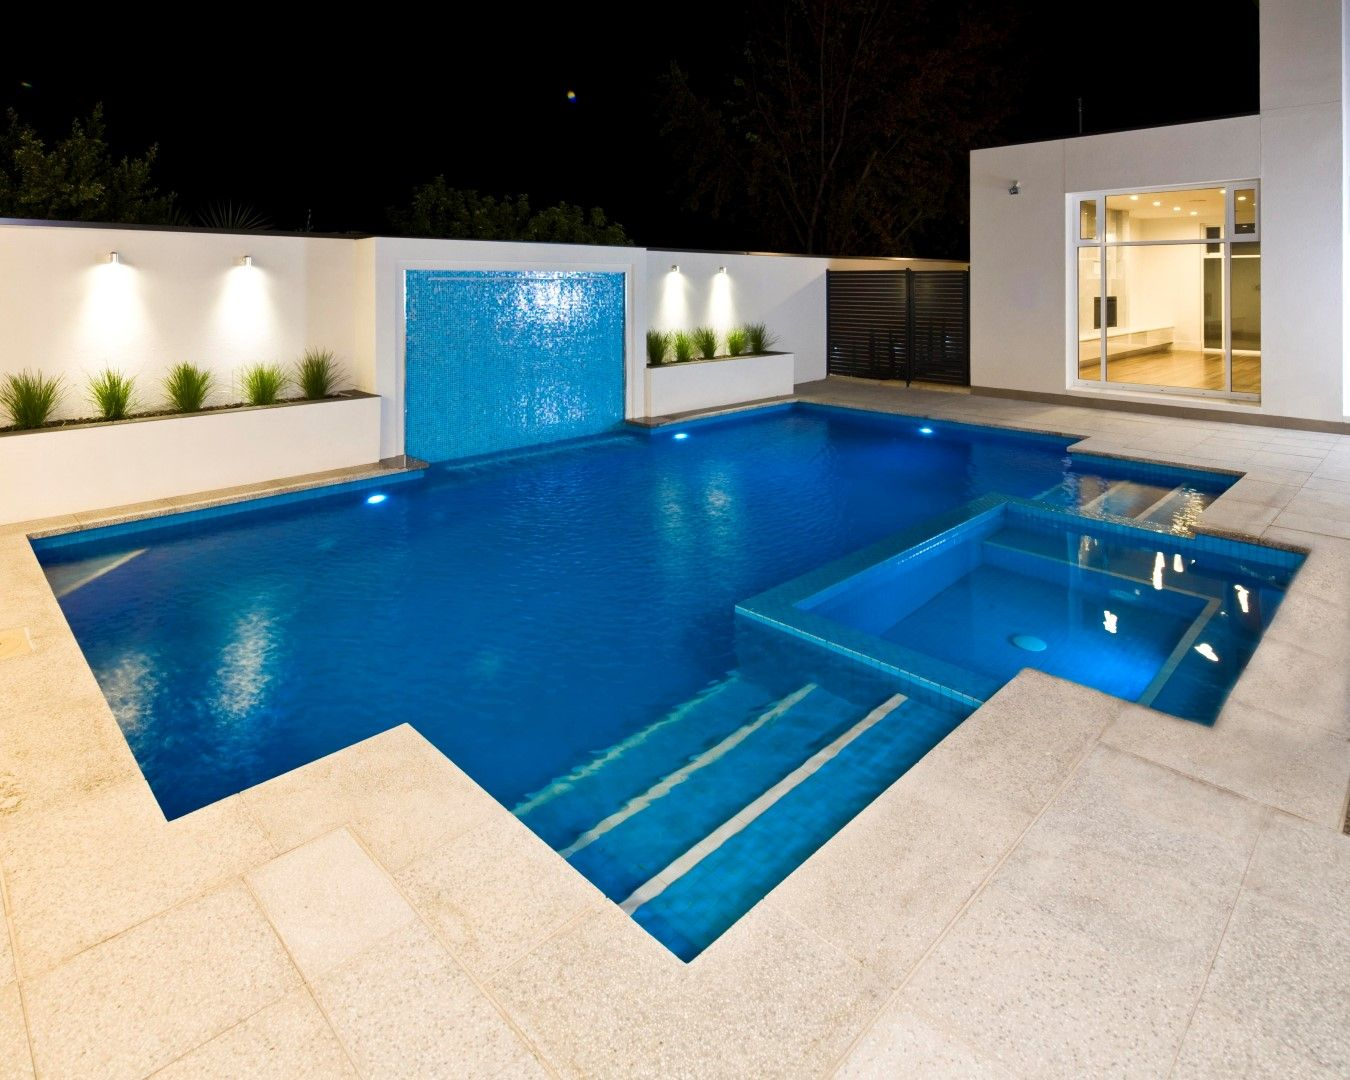 Pools By Freedom Pools Australia S Most Awarded Pool Manufacturer Indoor Swimming Pool Design Cool Swimming Pools Luxury Swimming Pools